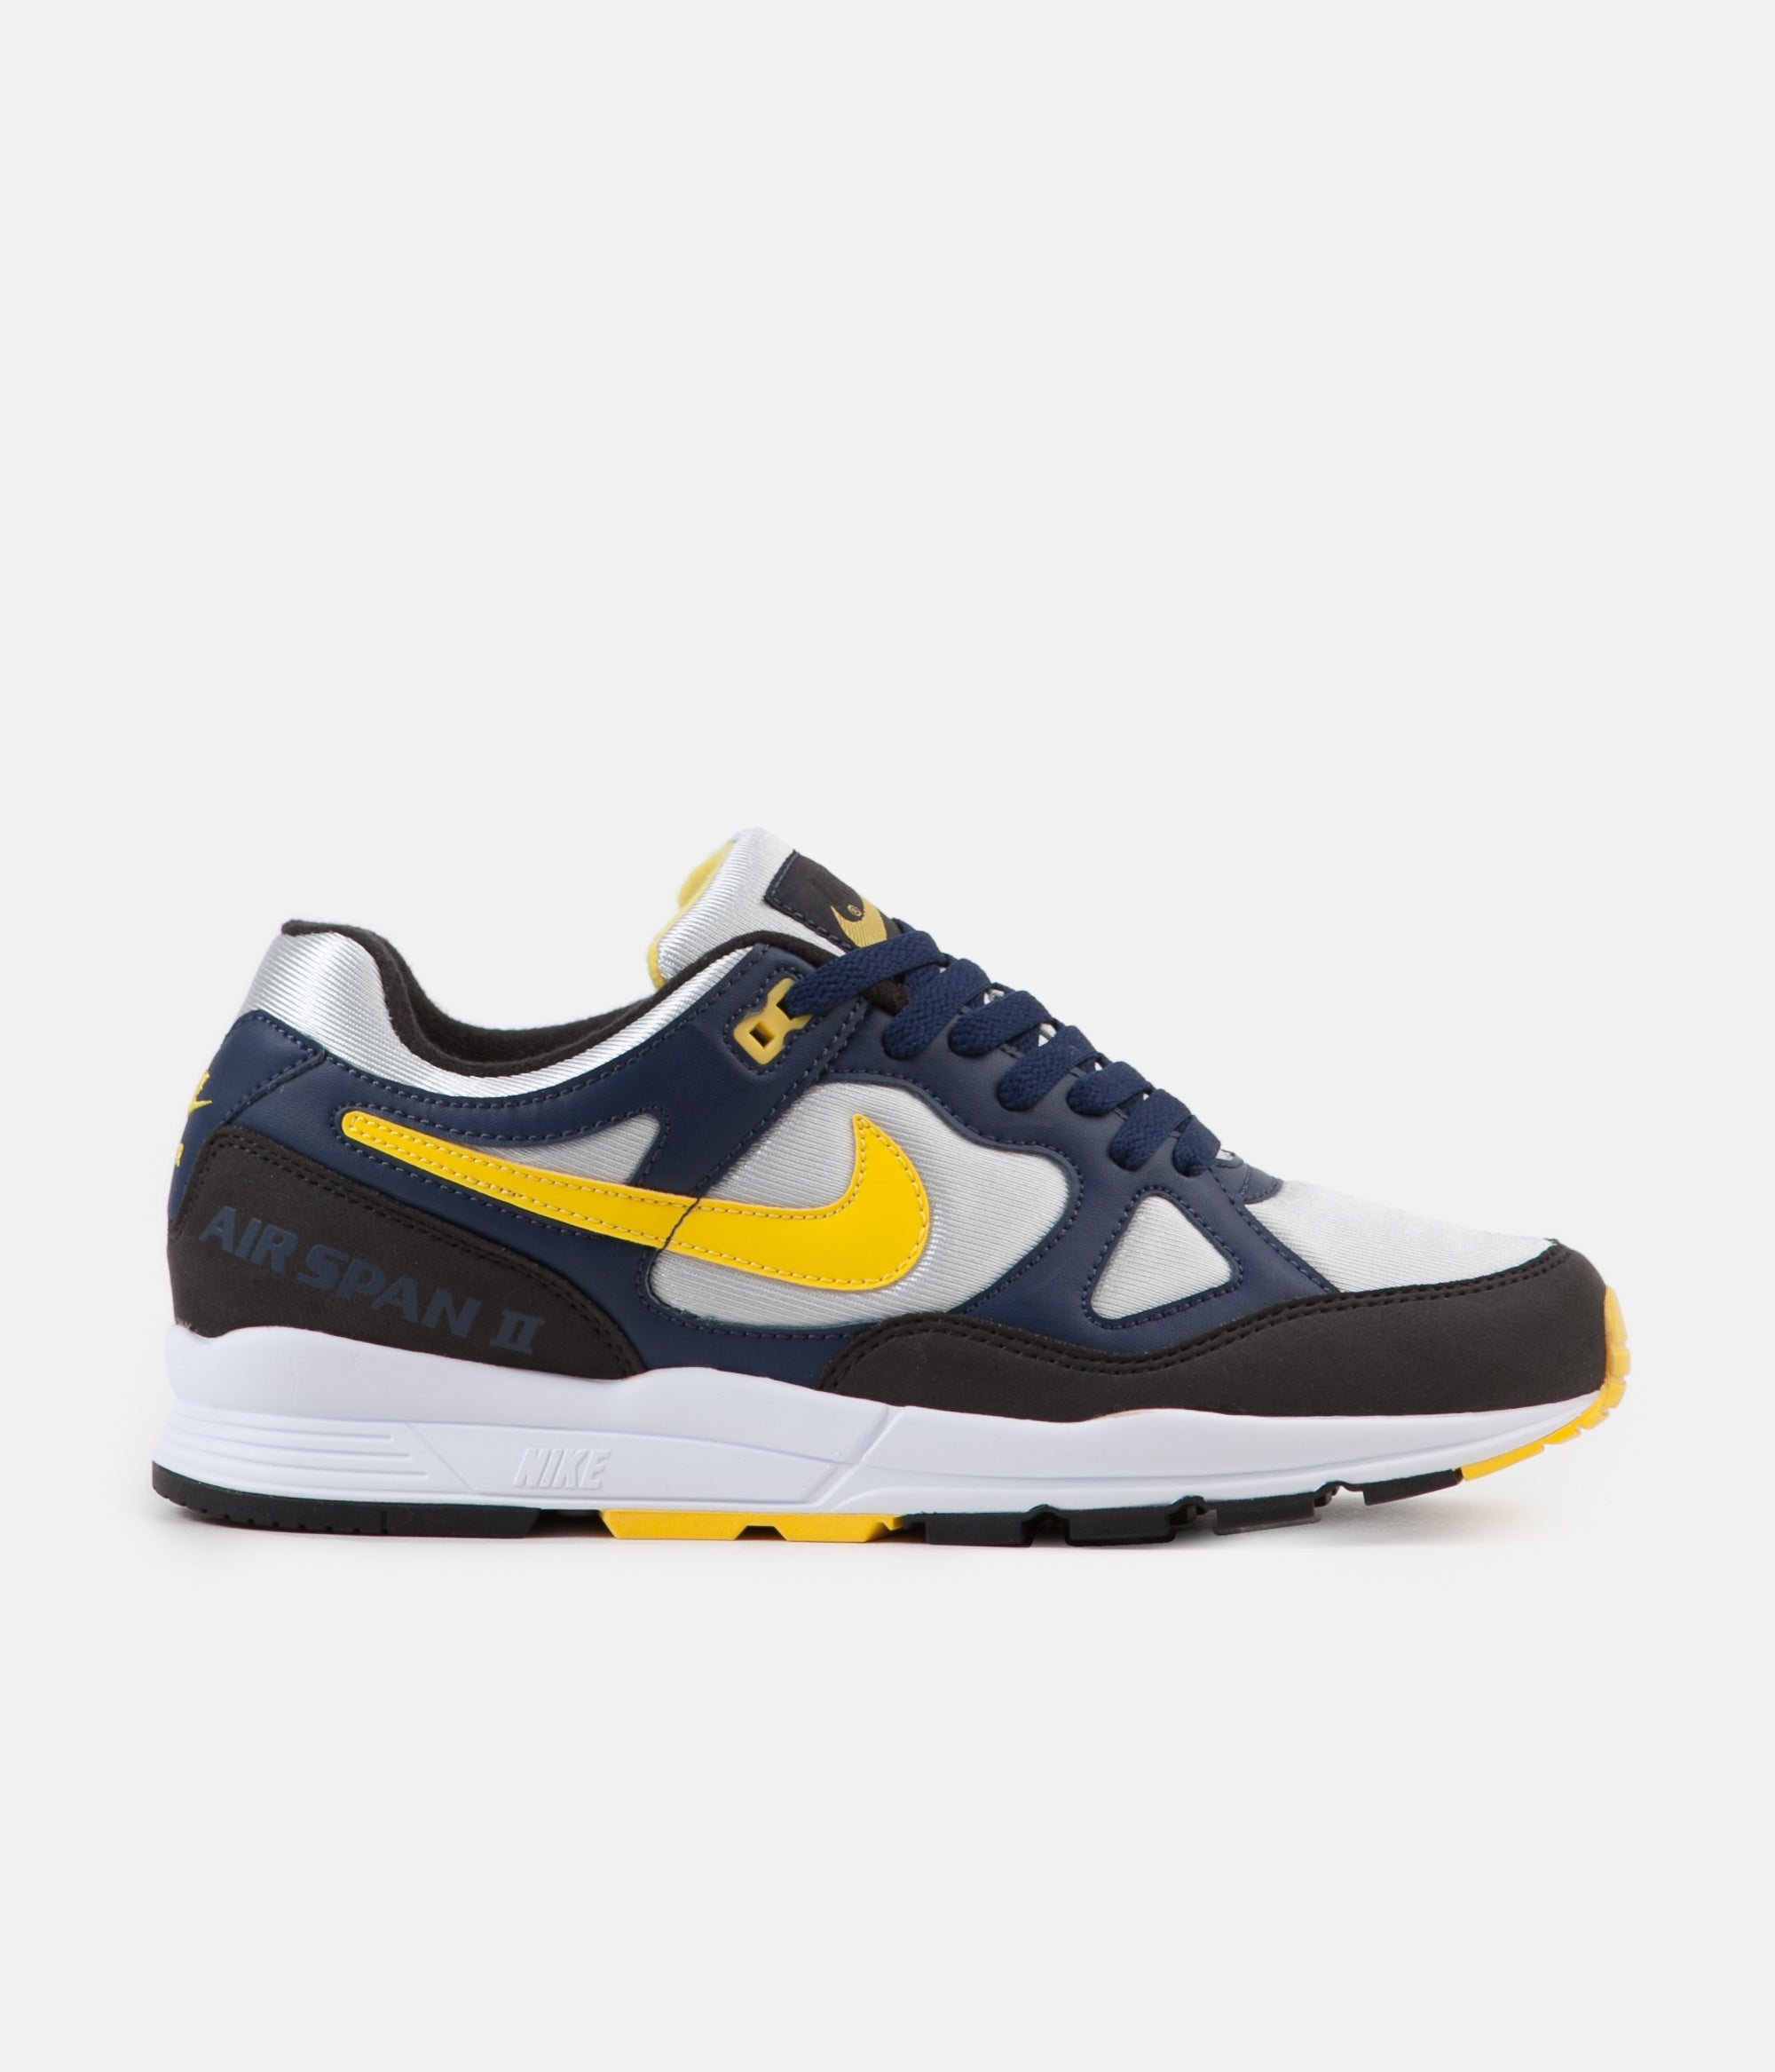 classic fit 3f022 a5a37 ... Nike Air Span II Shoes - Midnight Navy  Tour Yellow - Black ...